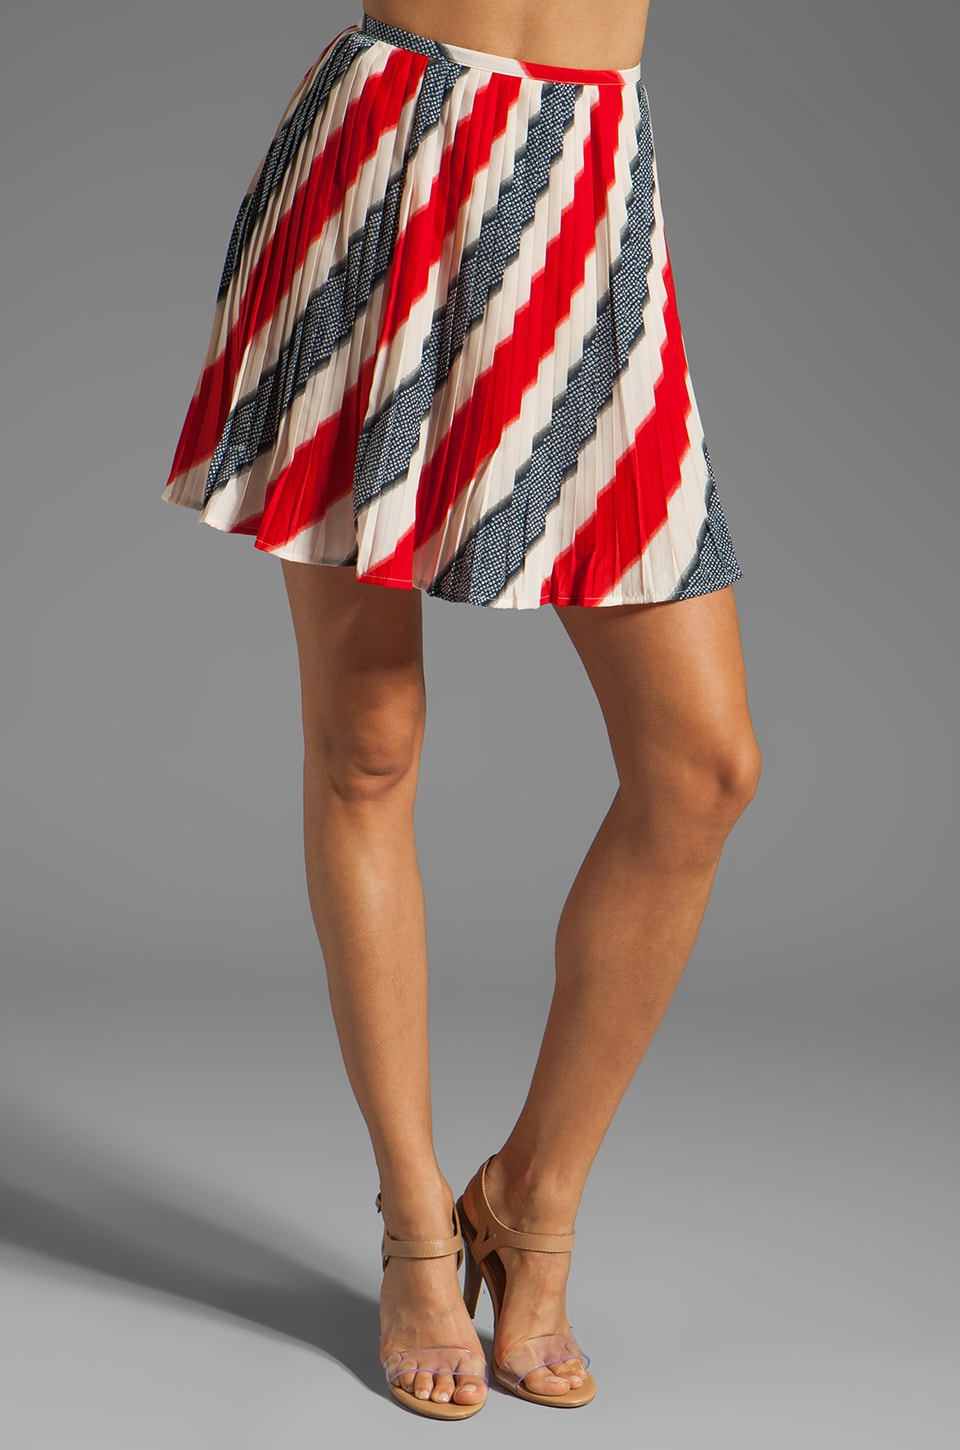 BB Dakota Dorene Stripe River Skirt in Midnight Blue/True Red